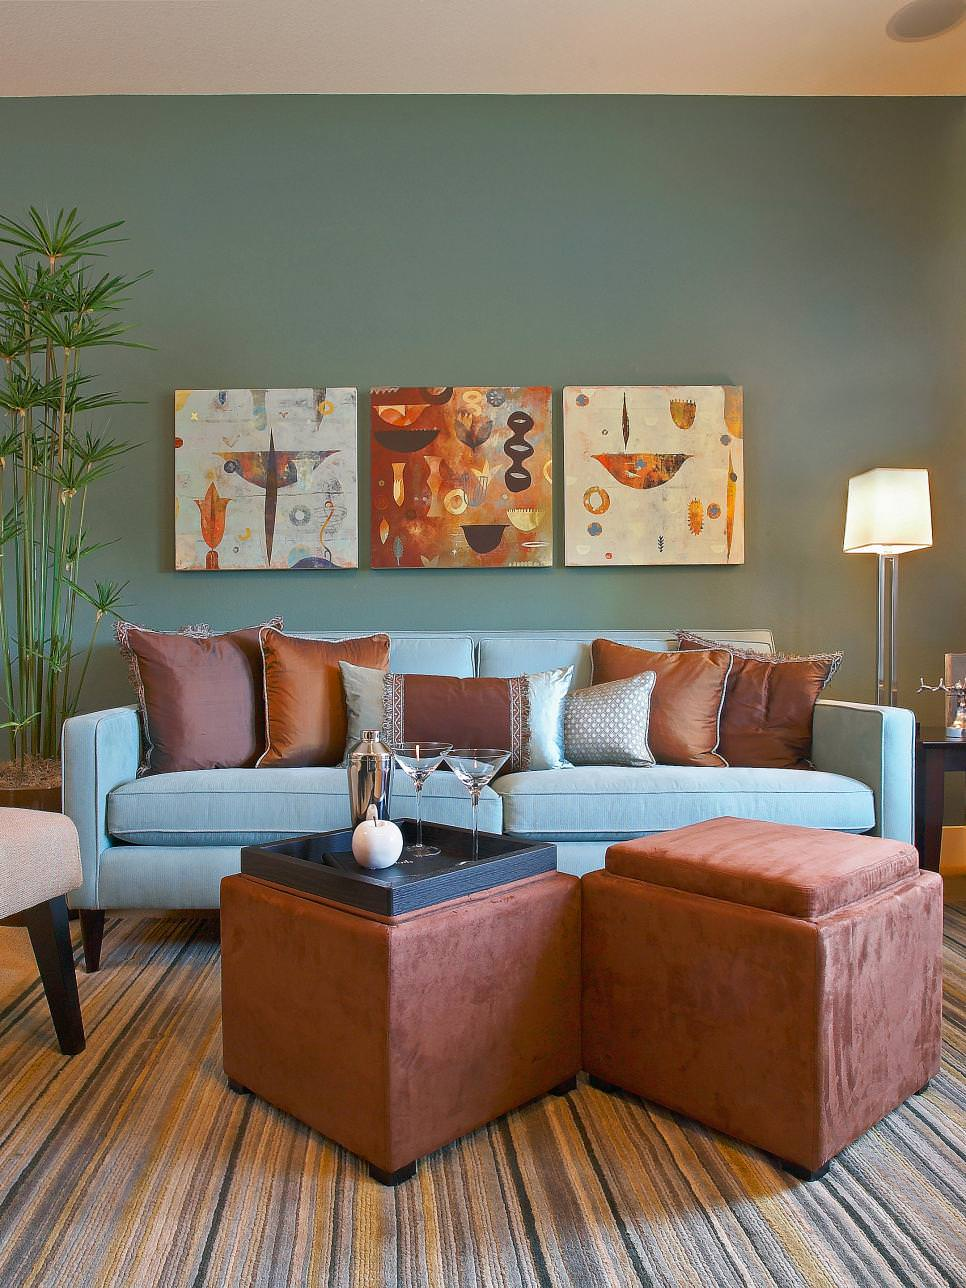 20 blue and brown living room designs decorating ideas 83144